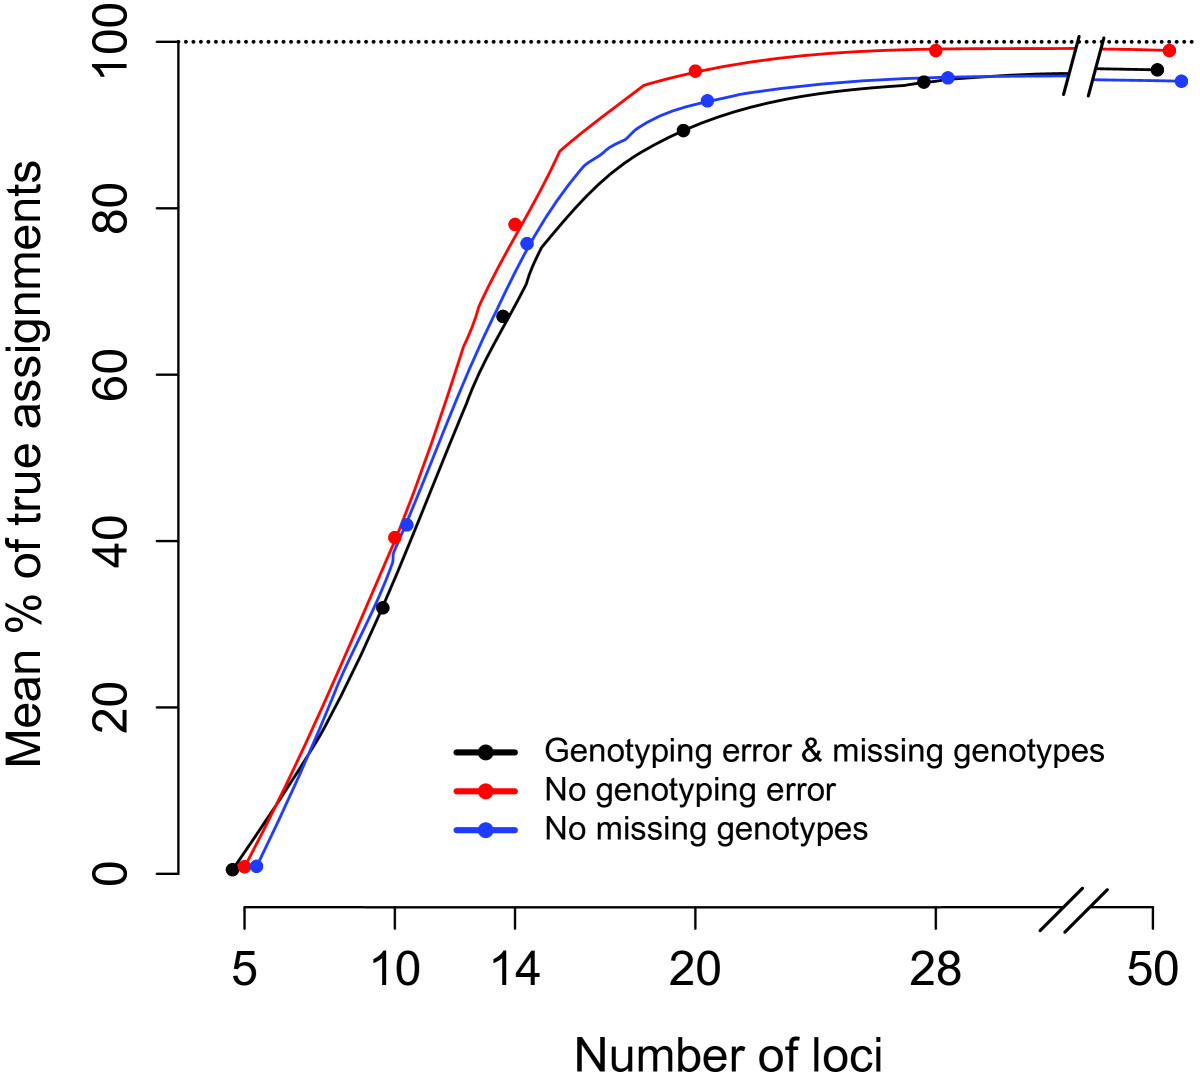 https://static-content.springer.com/image/art%3A10.1186%2F1471-2148-14-68/MediaObjects/12862_2013_Article_2542_Fig5_HTML.jpg